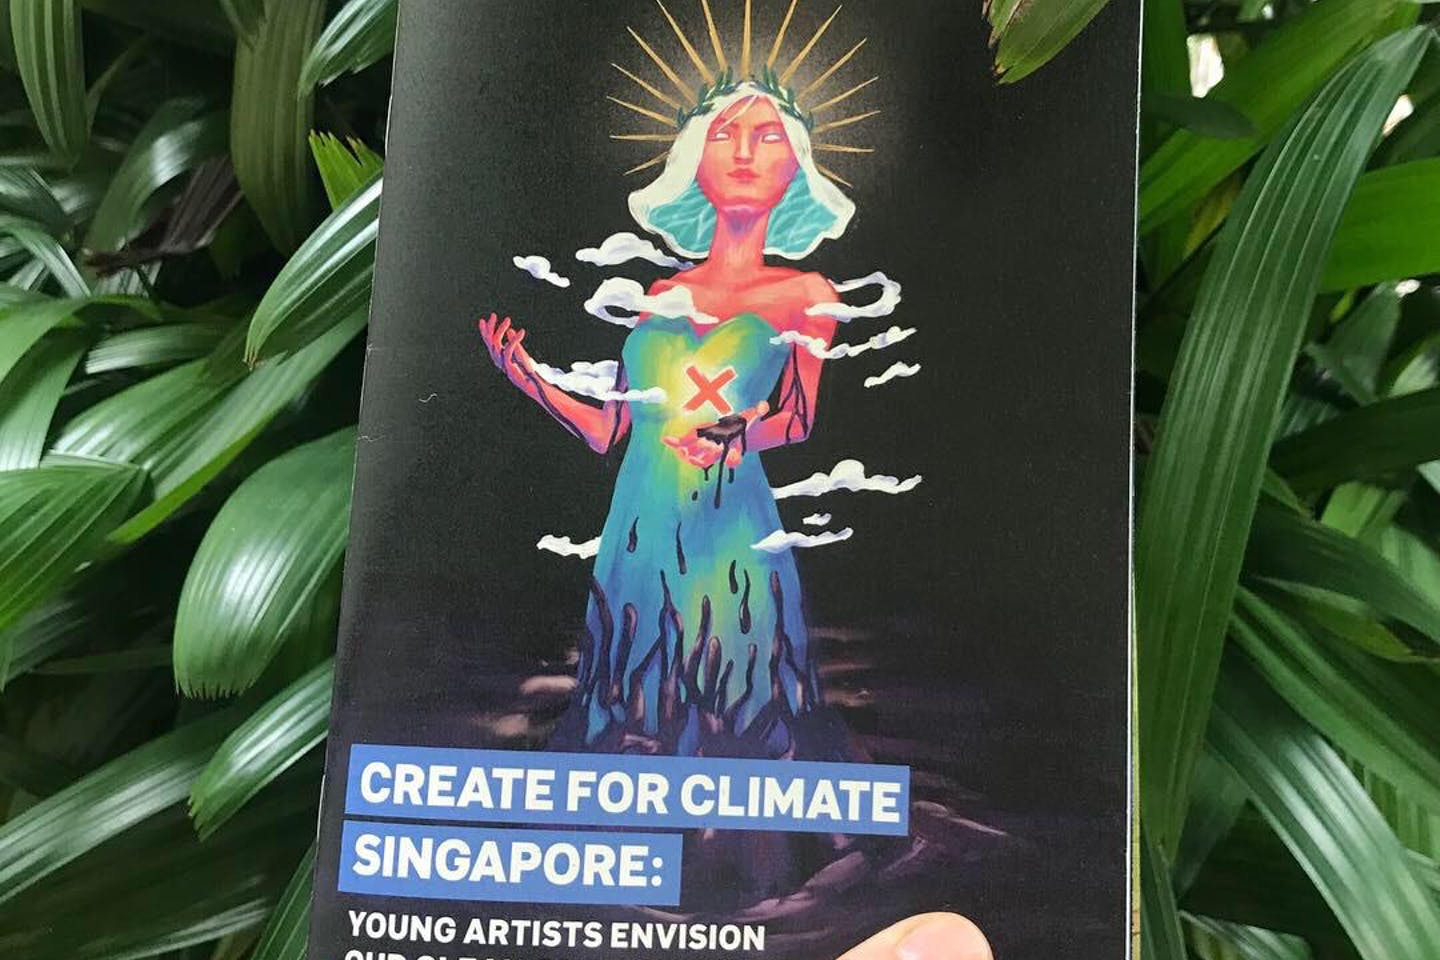 Launch and dissemination of Create for Climate Art Competition Catalogue—with diverse contributions from young artists